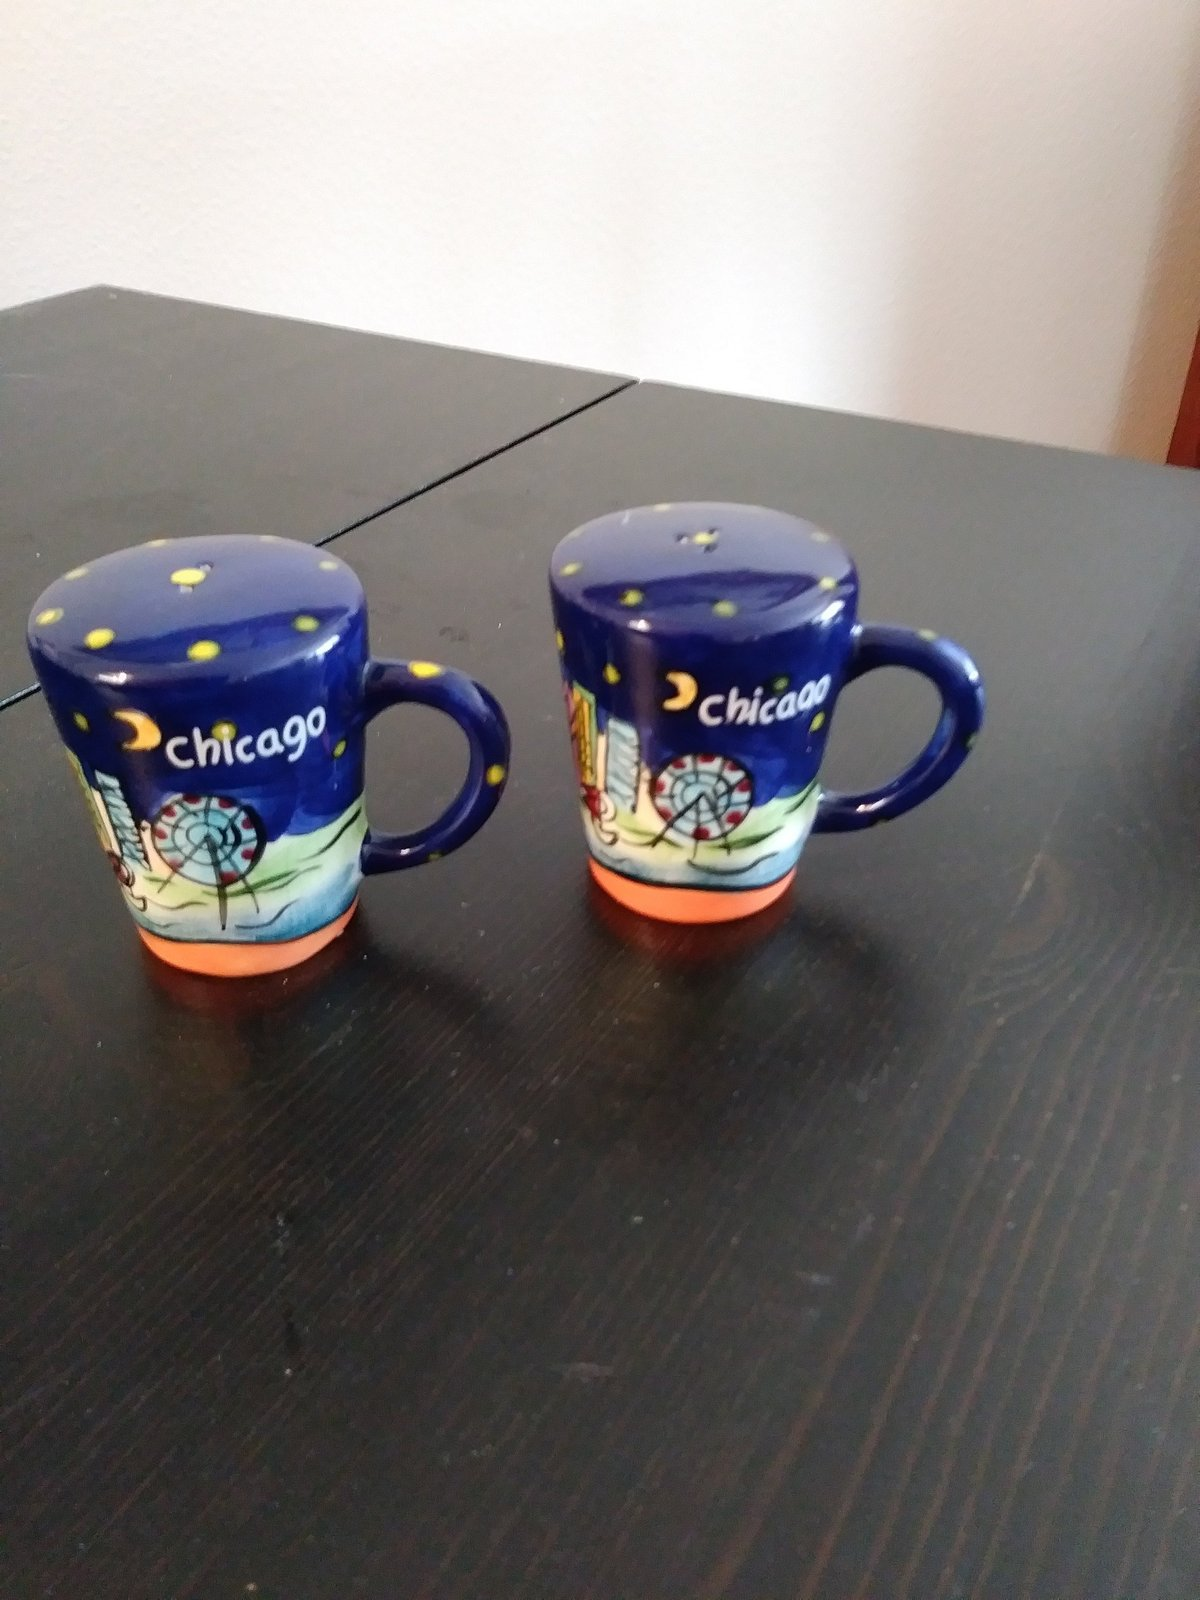 Chicago Dark Blue Porcelain Salt & Pepper Pepper Shakers